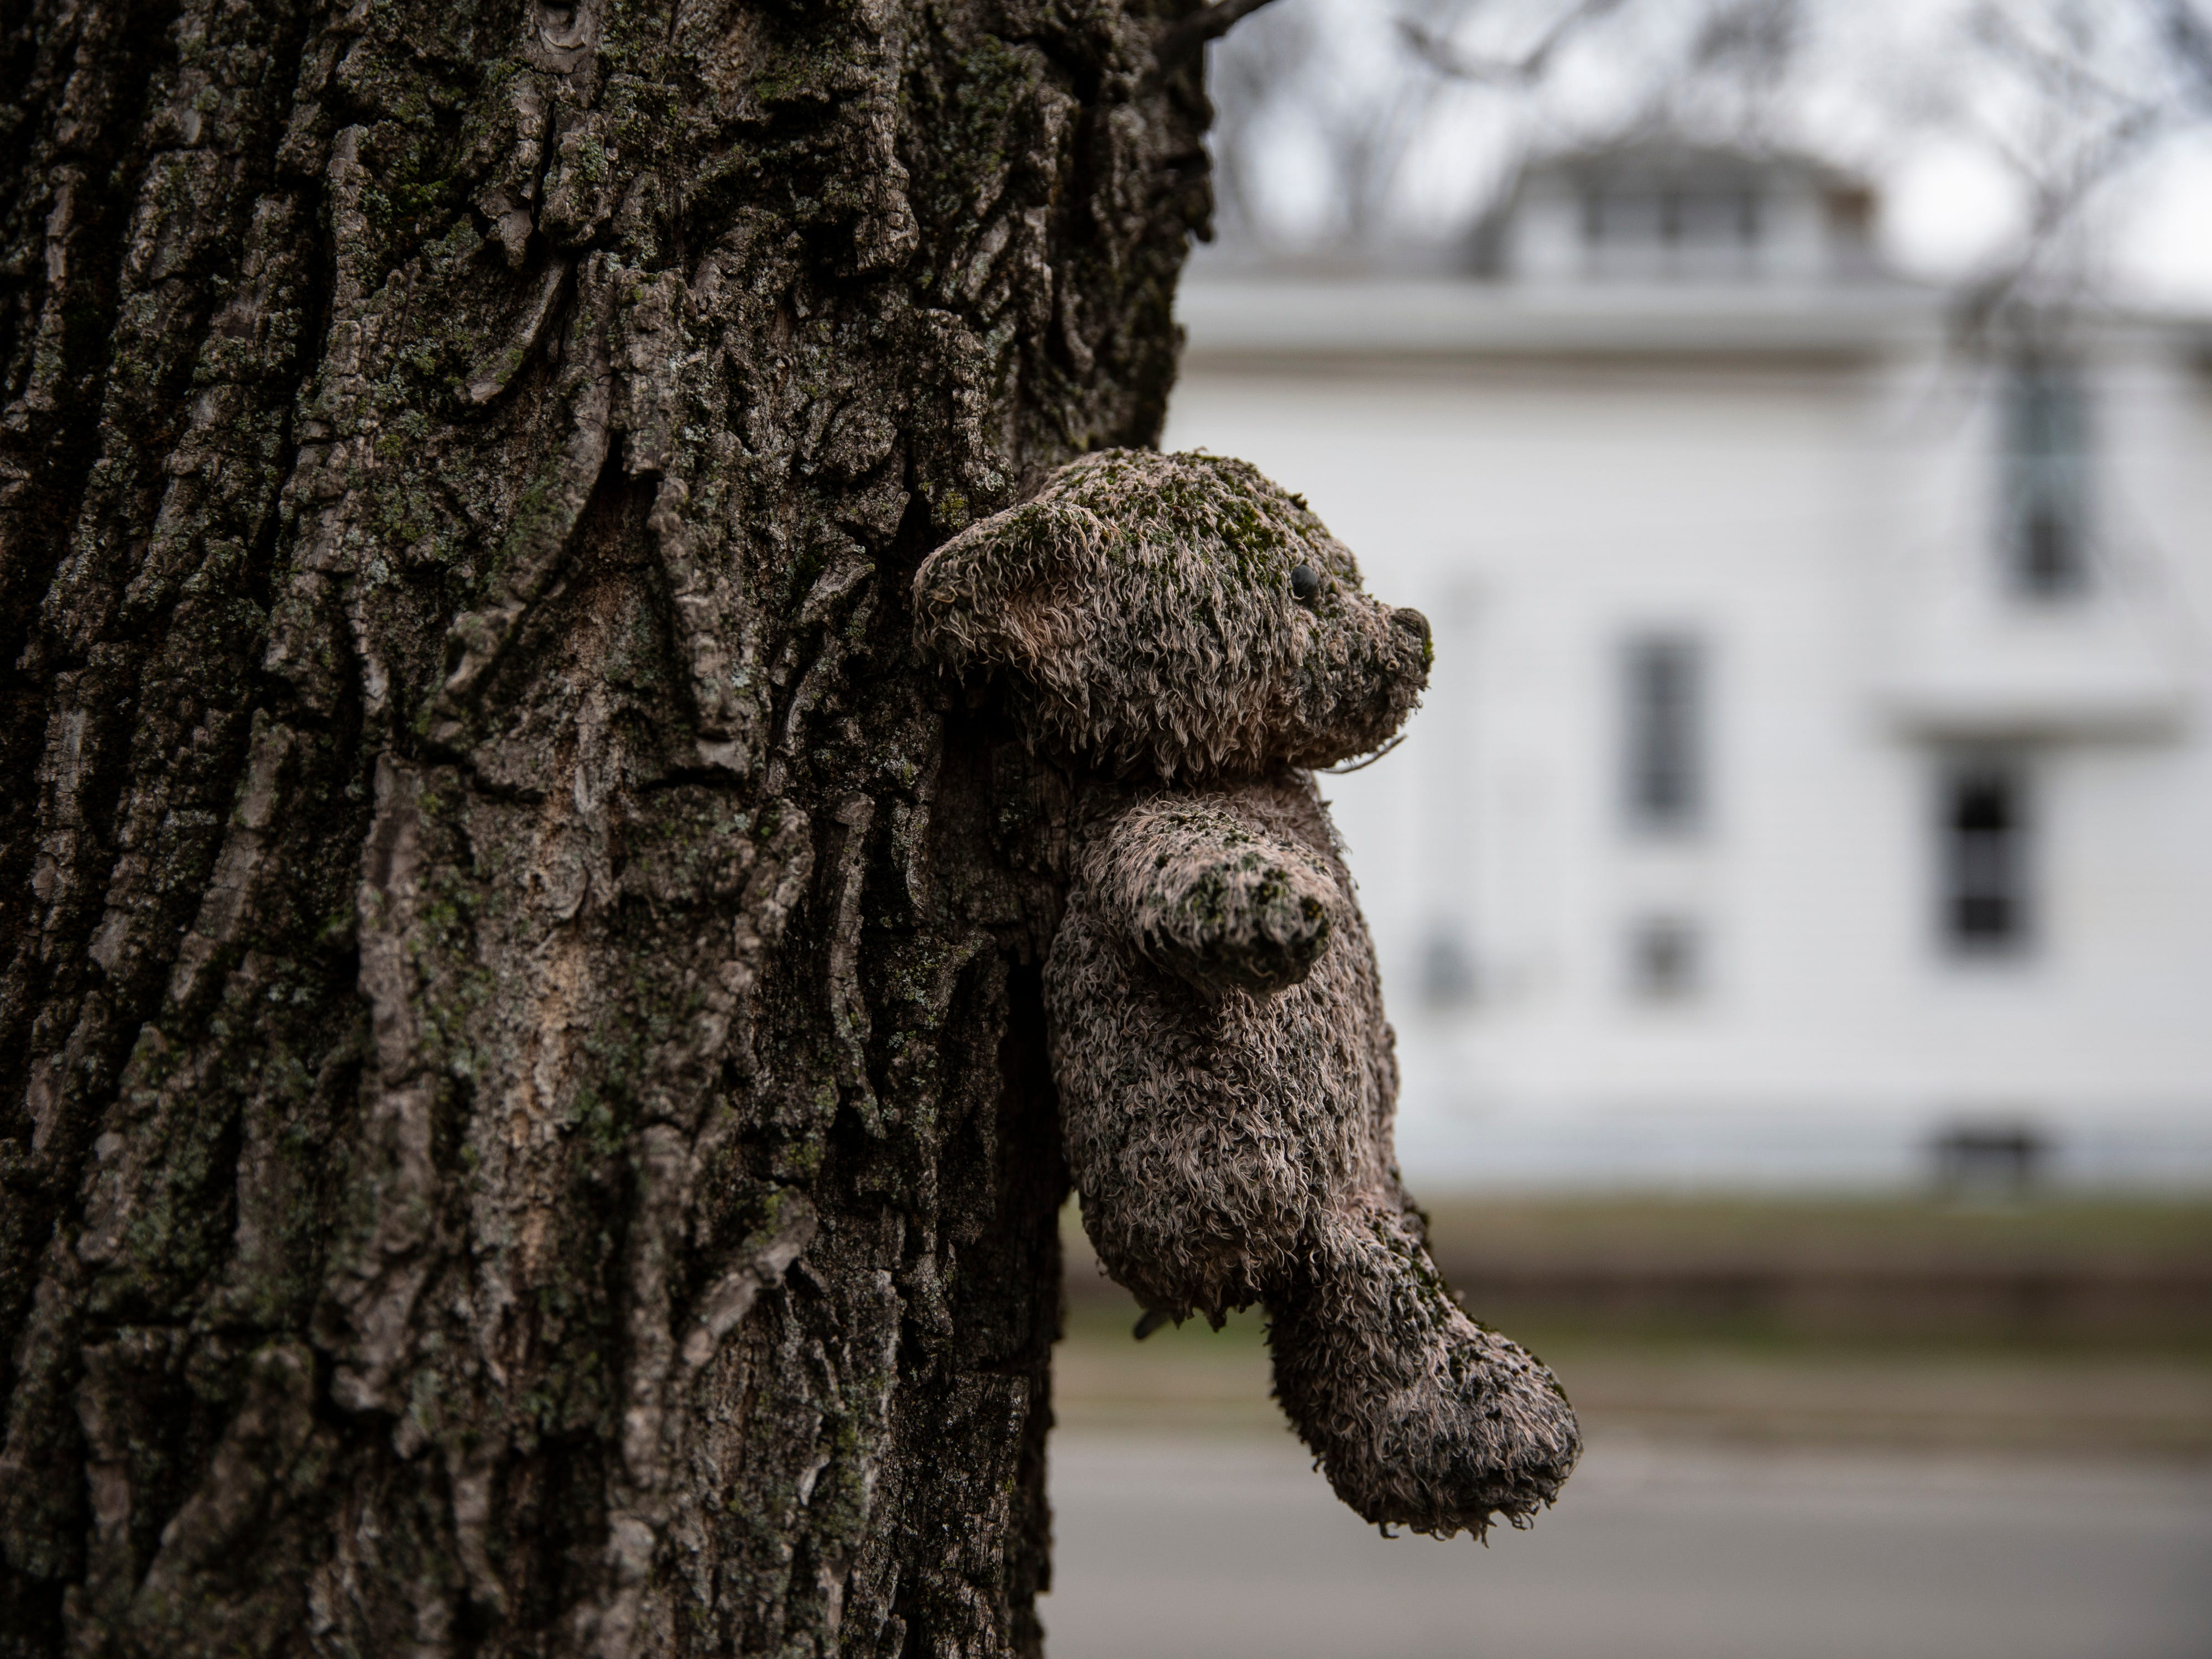 One of two bears placed on a tree at Cypress and Wilson streets following the 2008 deaths of Marc, Jemar, Demar Claybrooks and Aaron Shields, all killed in a car accident. The boys accepted a ride with Herbert Lee in a stolen a car. Lee crashed the car into a tree during a police chase, killing the four youths. March 21, 2019